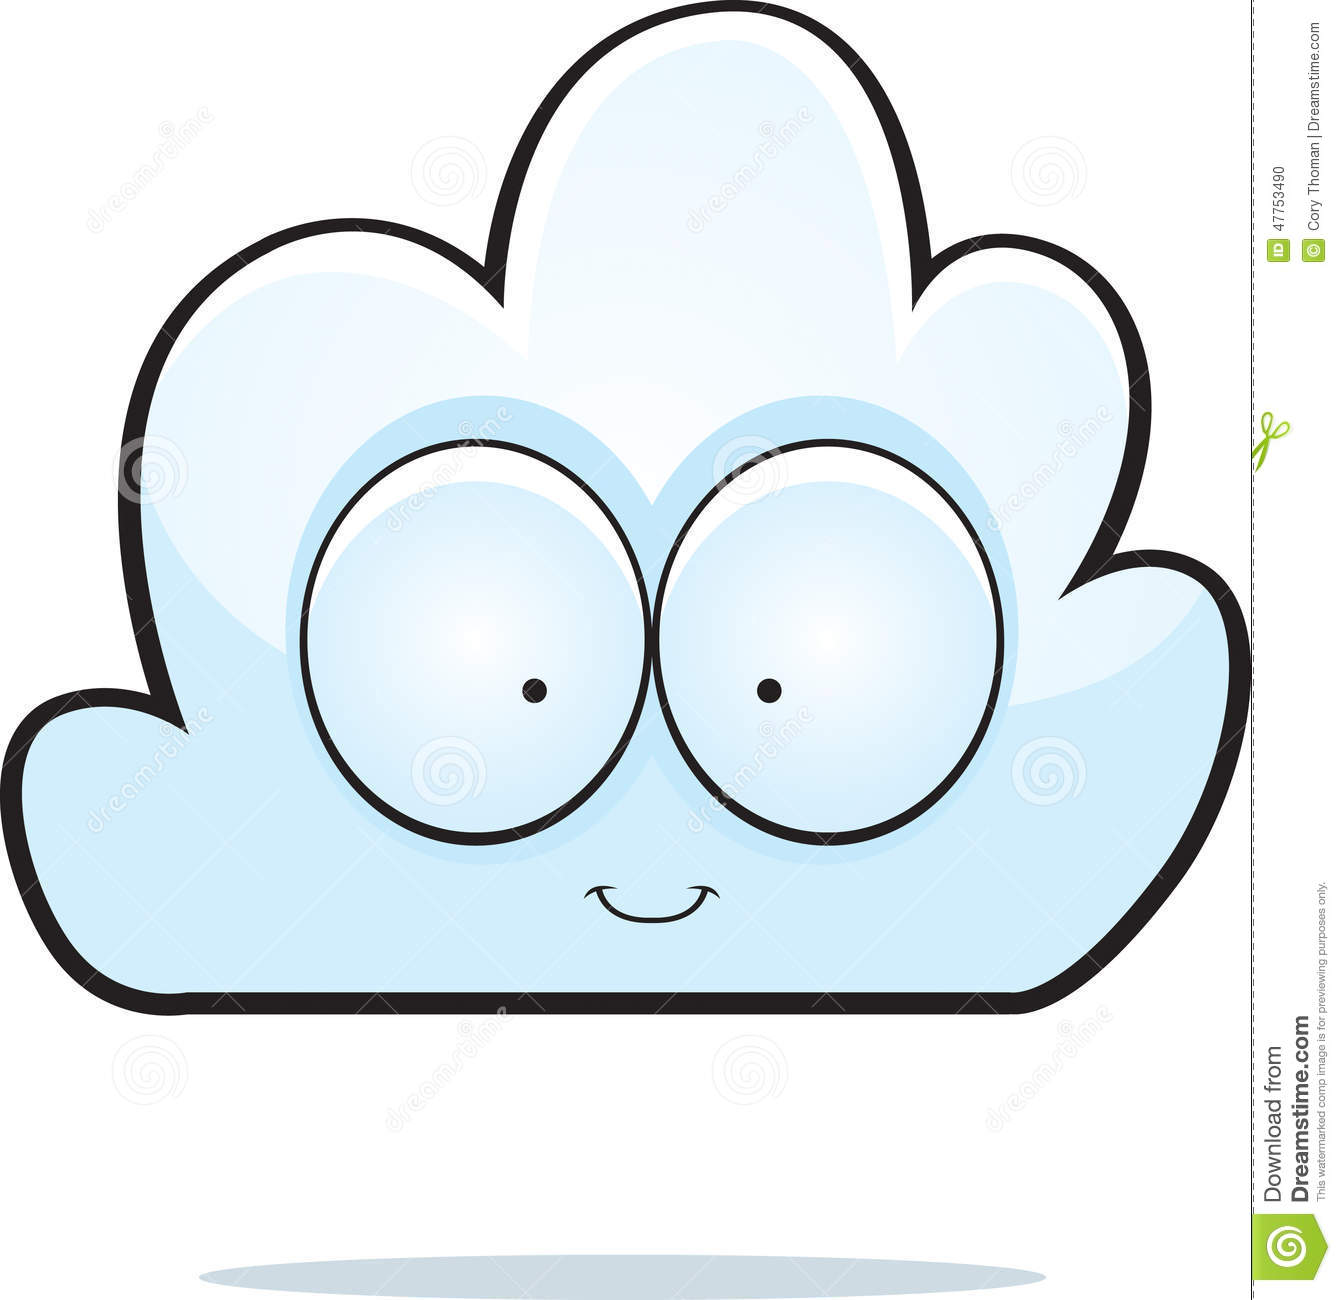 cartoon illustration of a cloud smiling and happy.